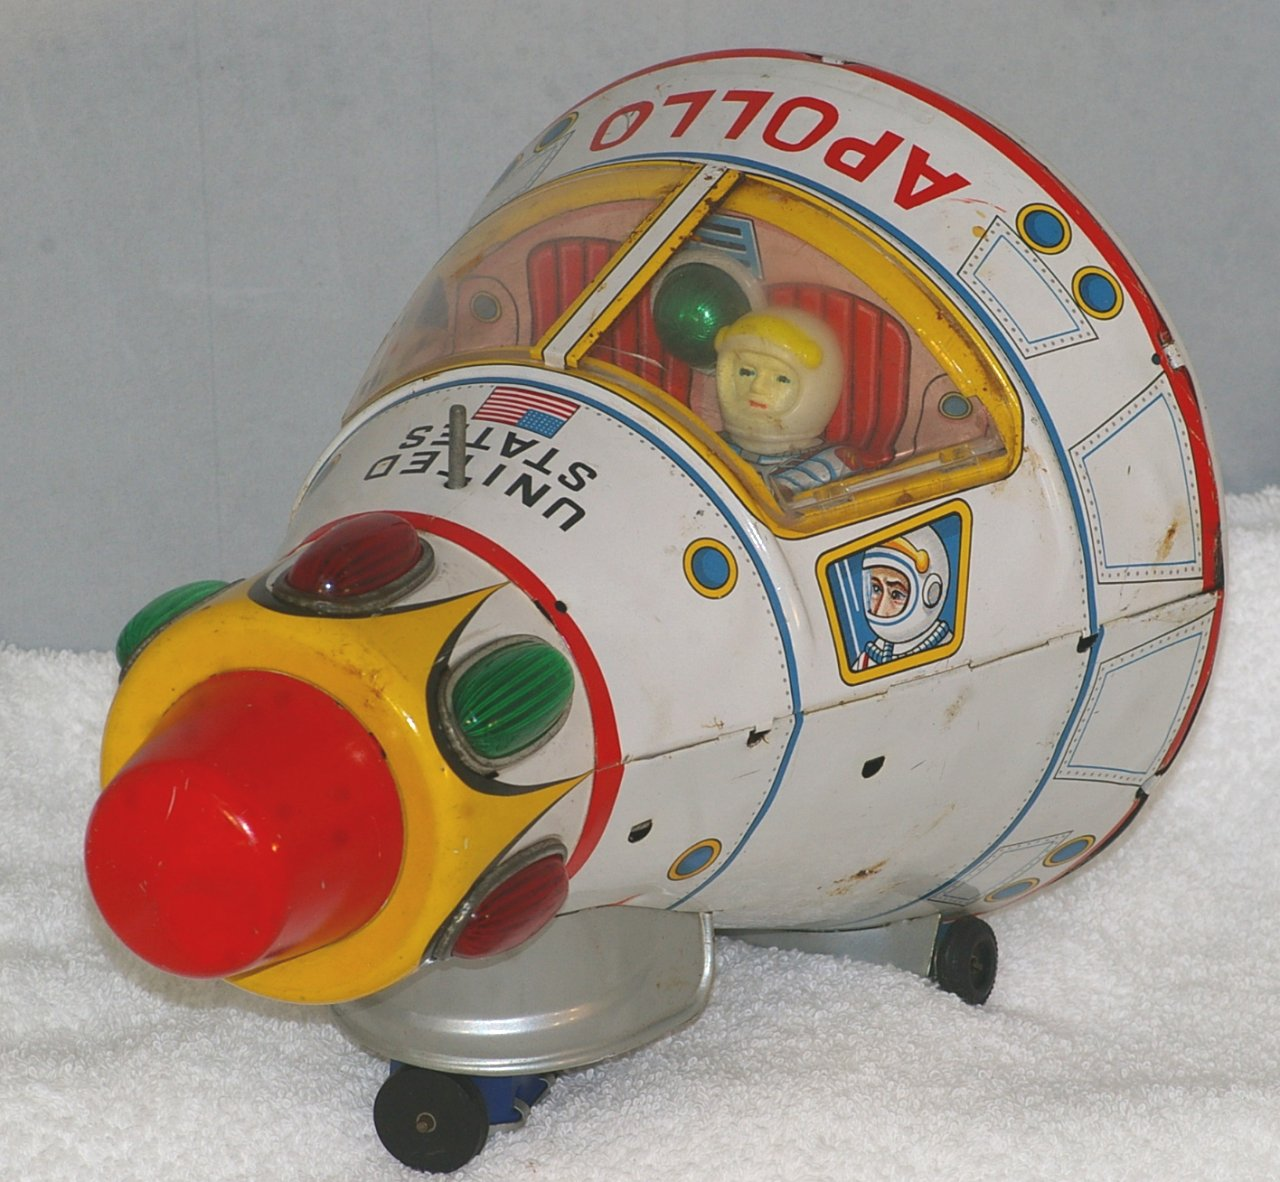 Masudaya Modern Toys Battery Operated Apollo Module from 1960s